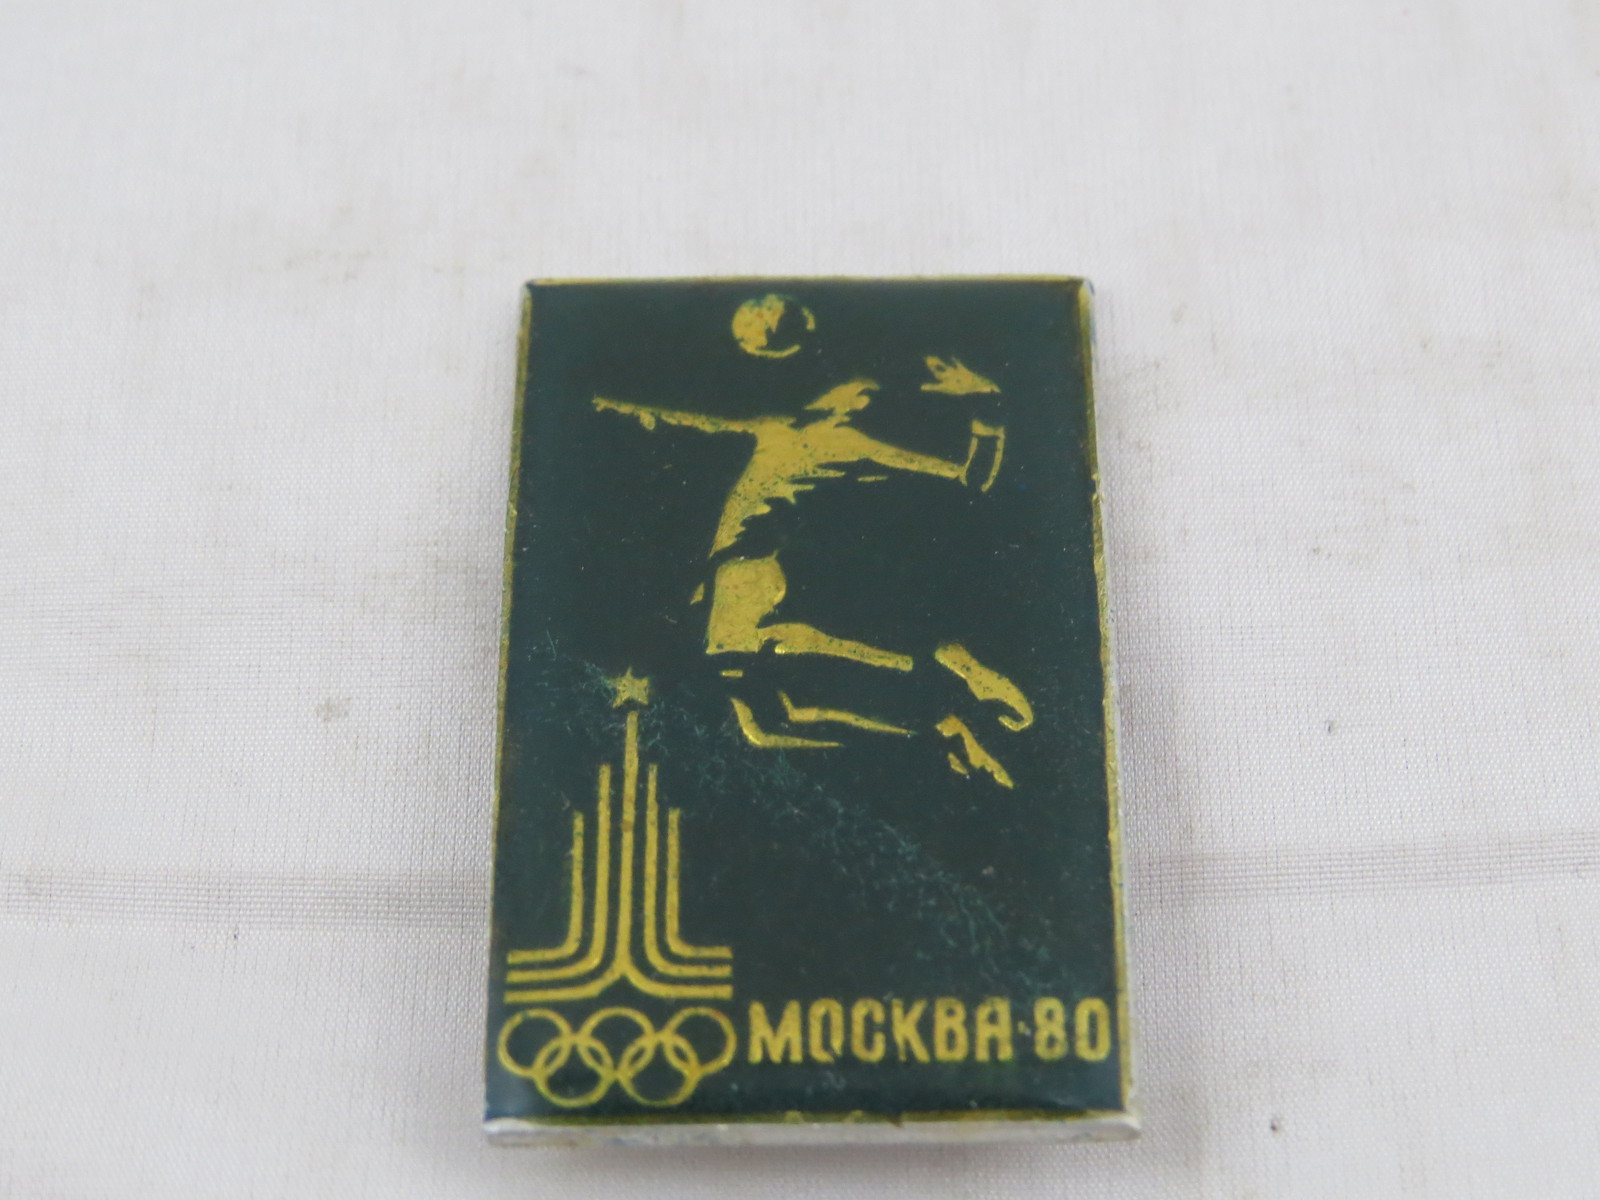 Primary image for 1980 Summer Olympic Pin - Vollebay Event Pin - Moscow USSR - Celluloid Pin